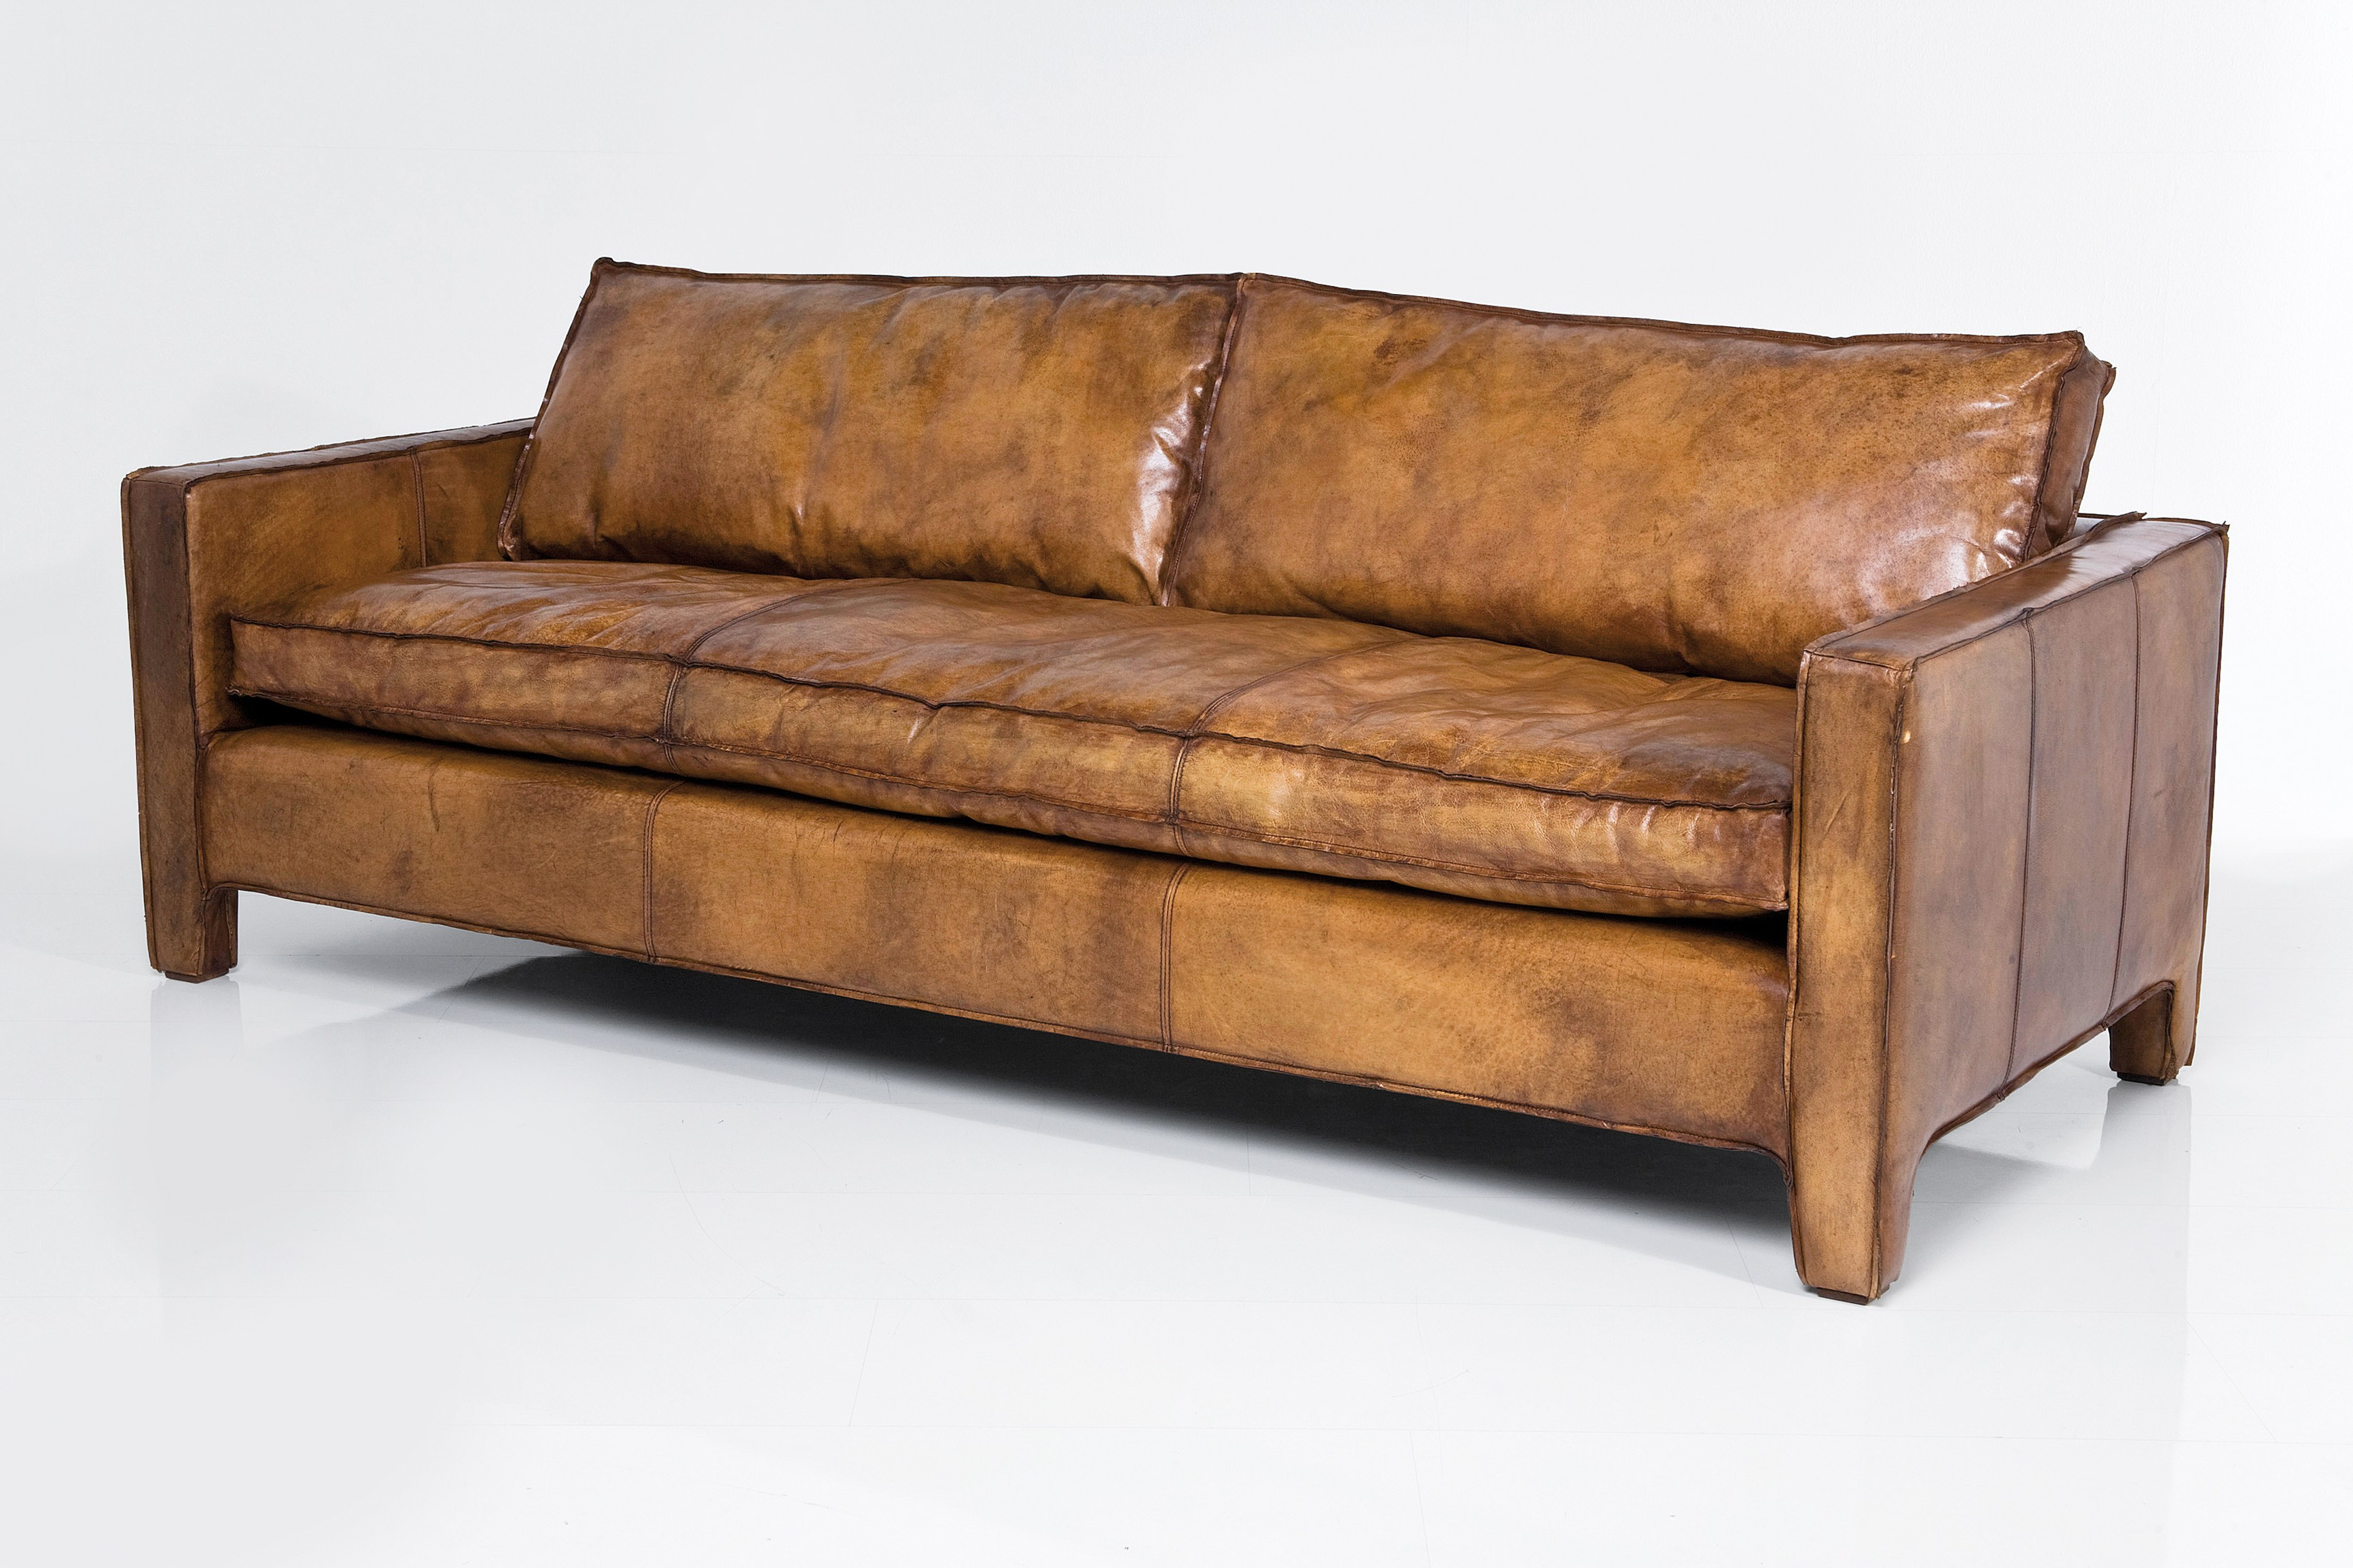 3 seater leather sofa FY BUFFALO BROWN By KARE DESIGN